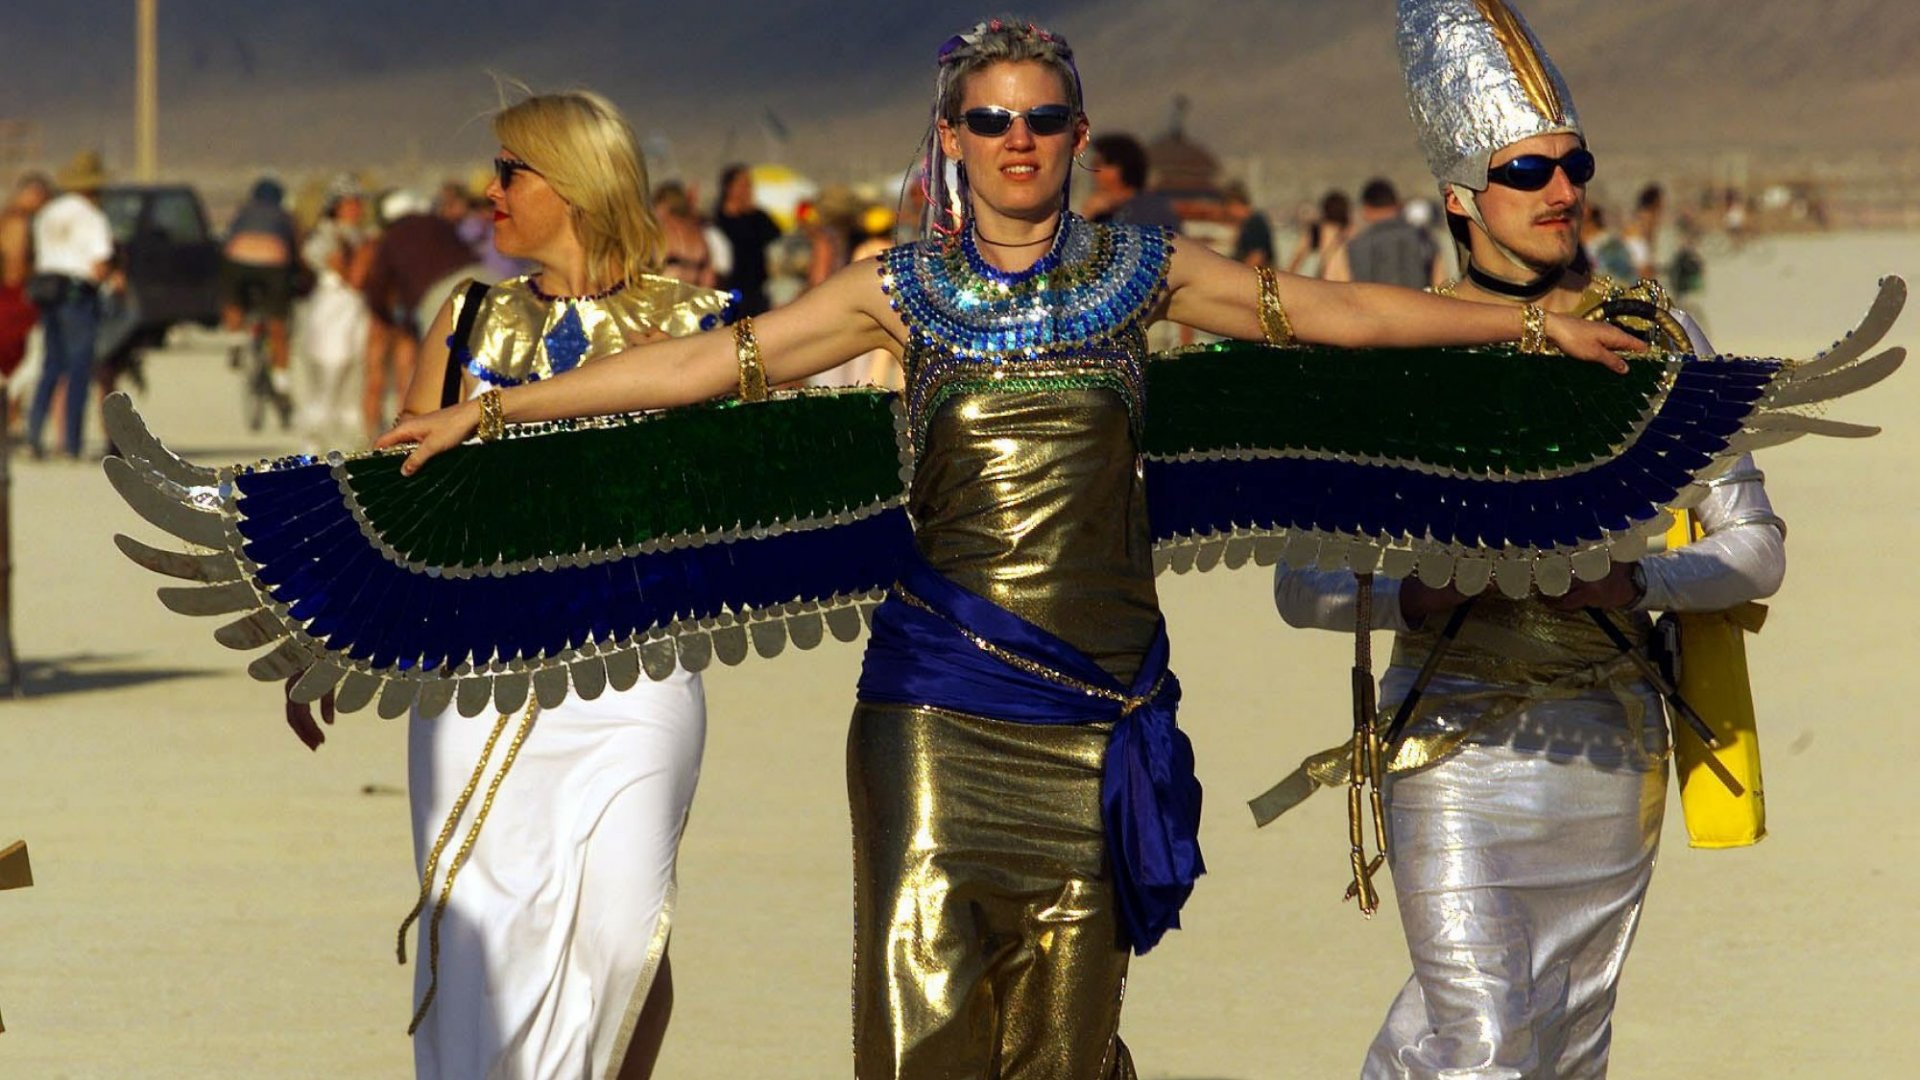 7 Unexpected Facts About Burning Man